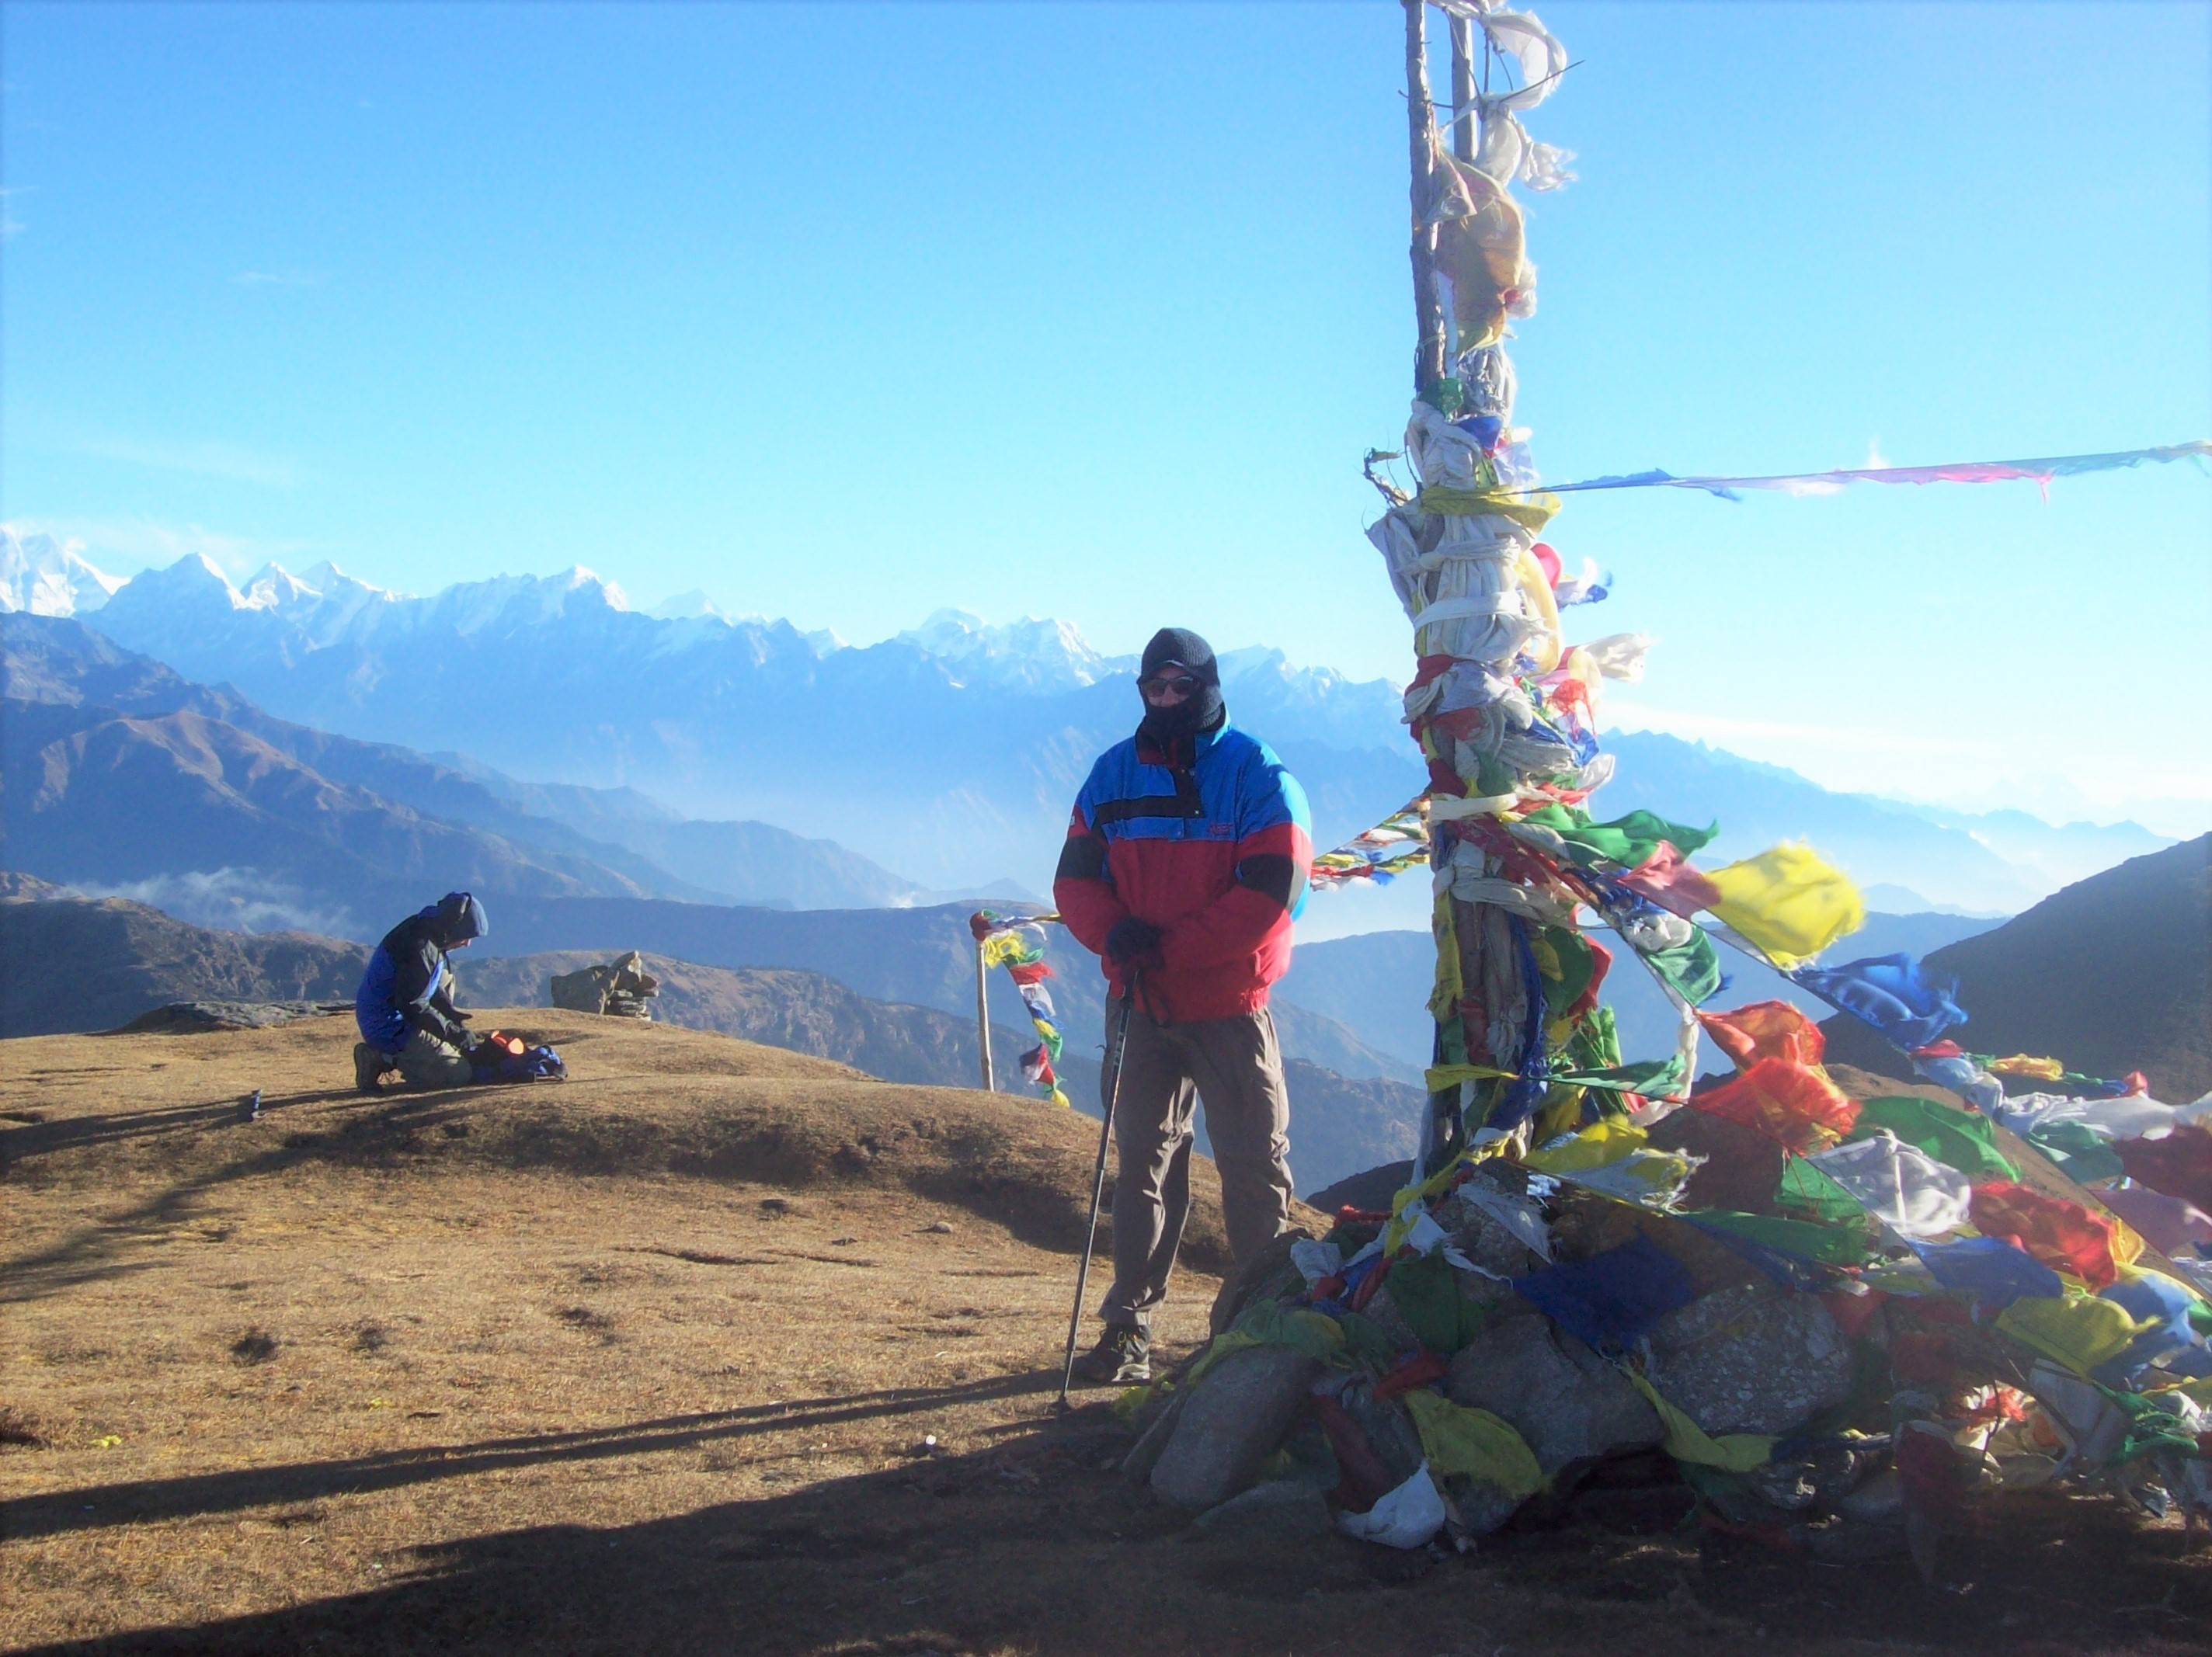 Man standing near prayer flags at a mountain summit